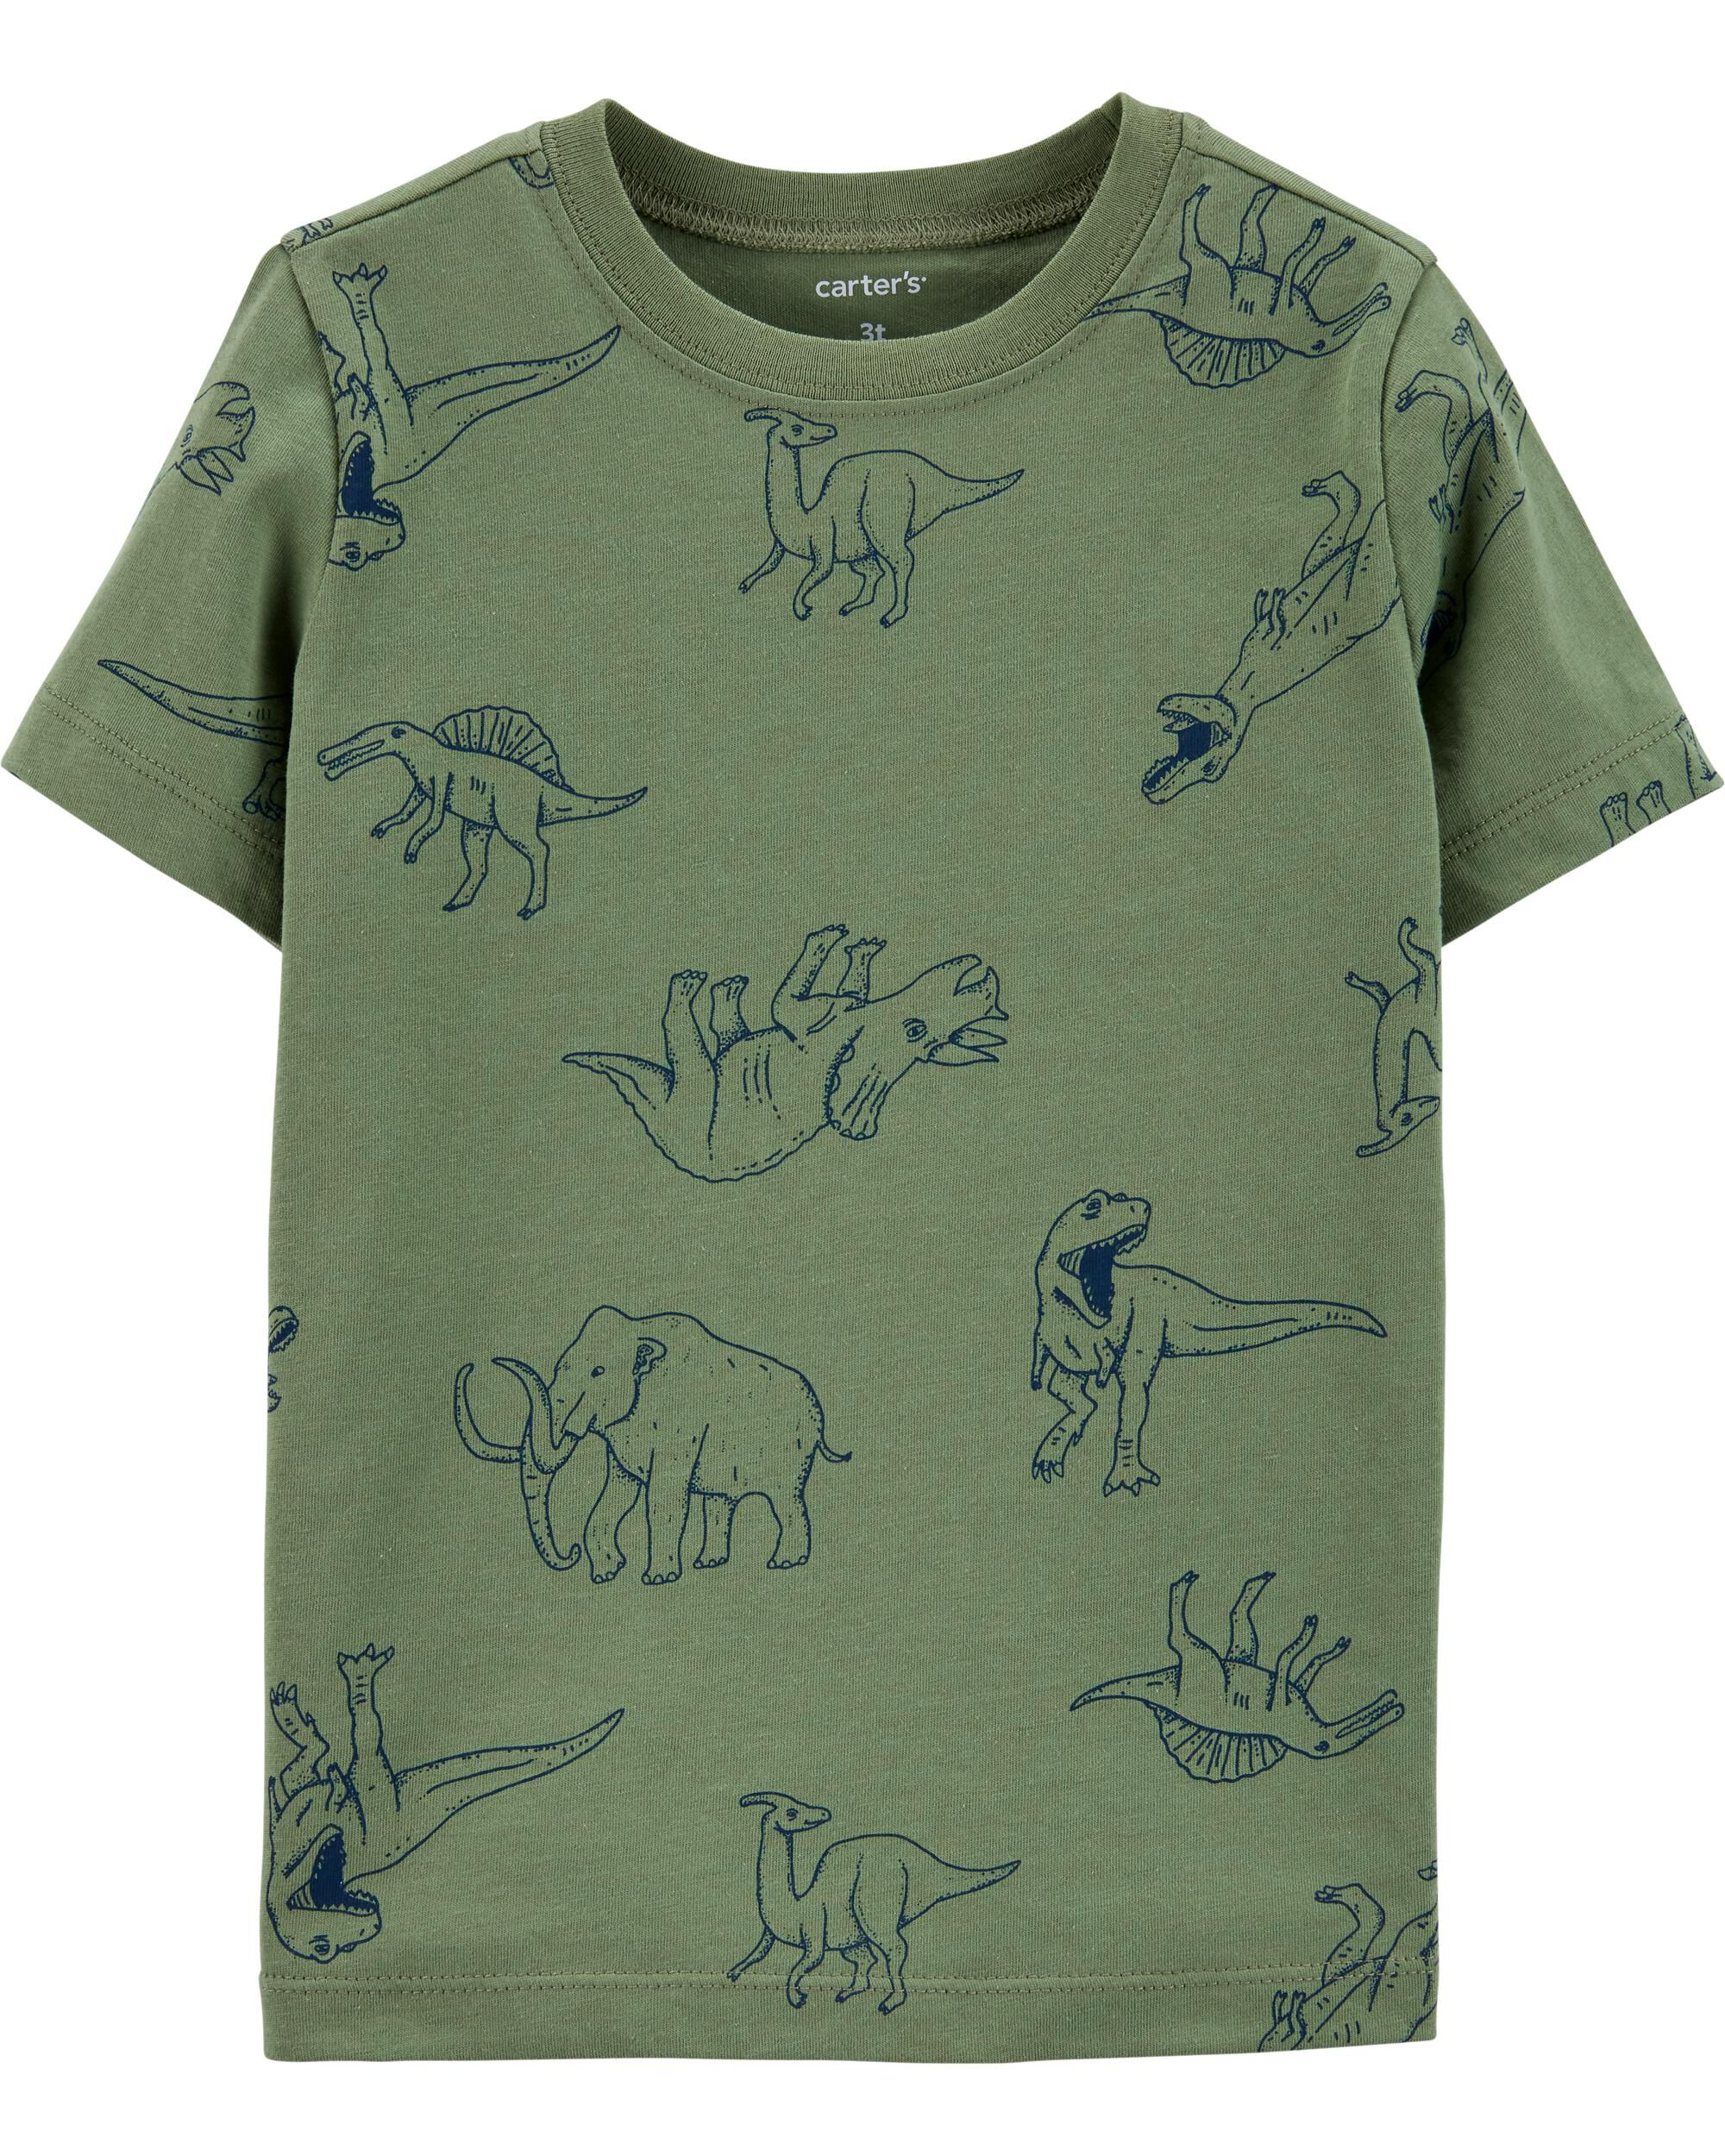 NWT BABY GAP BOYS  T-SHIRT TOP pocket green stripes   u pick size